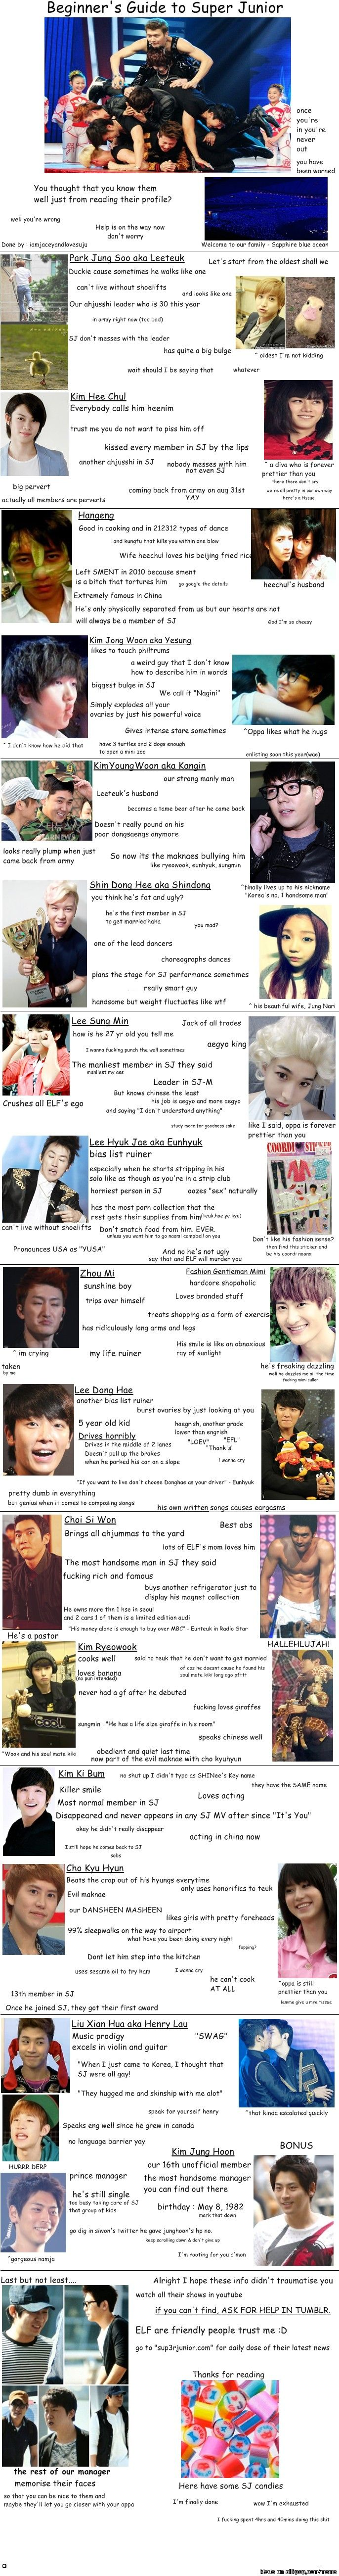 Love how they included Prince Manager. All of it is pretty much true, no lie